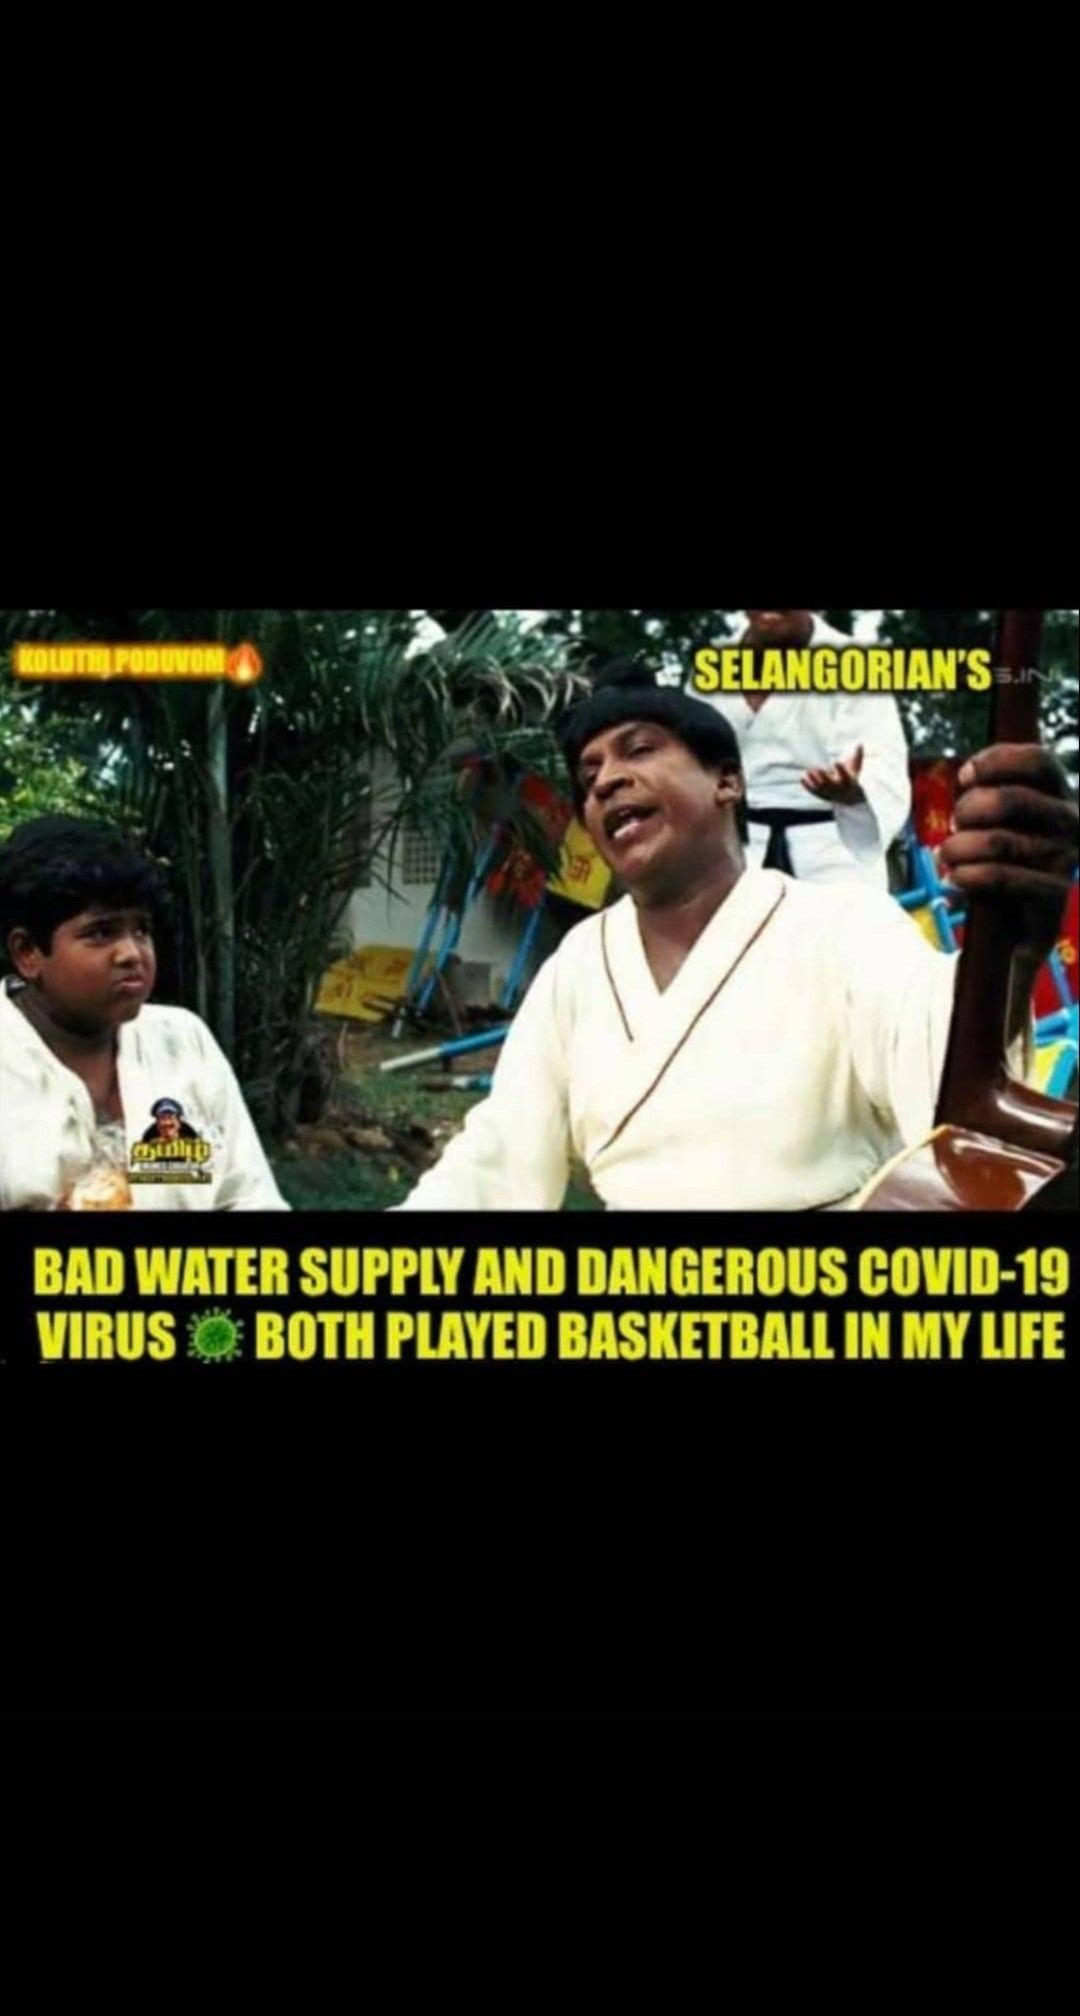 Pin By Shaaa On Tamil Funny Memes In 2021 Tamil Funny Memes Funny Memes Funny